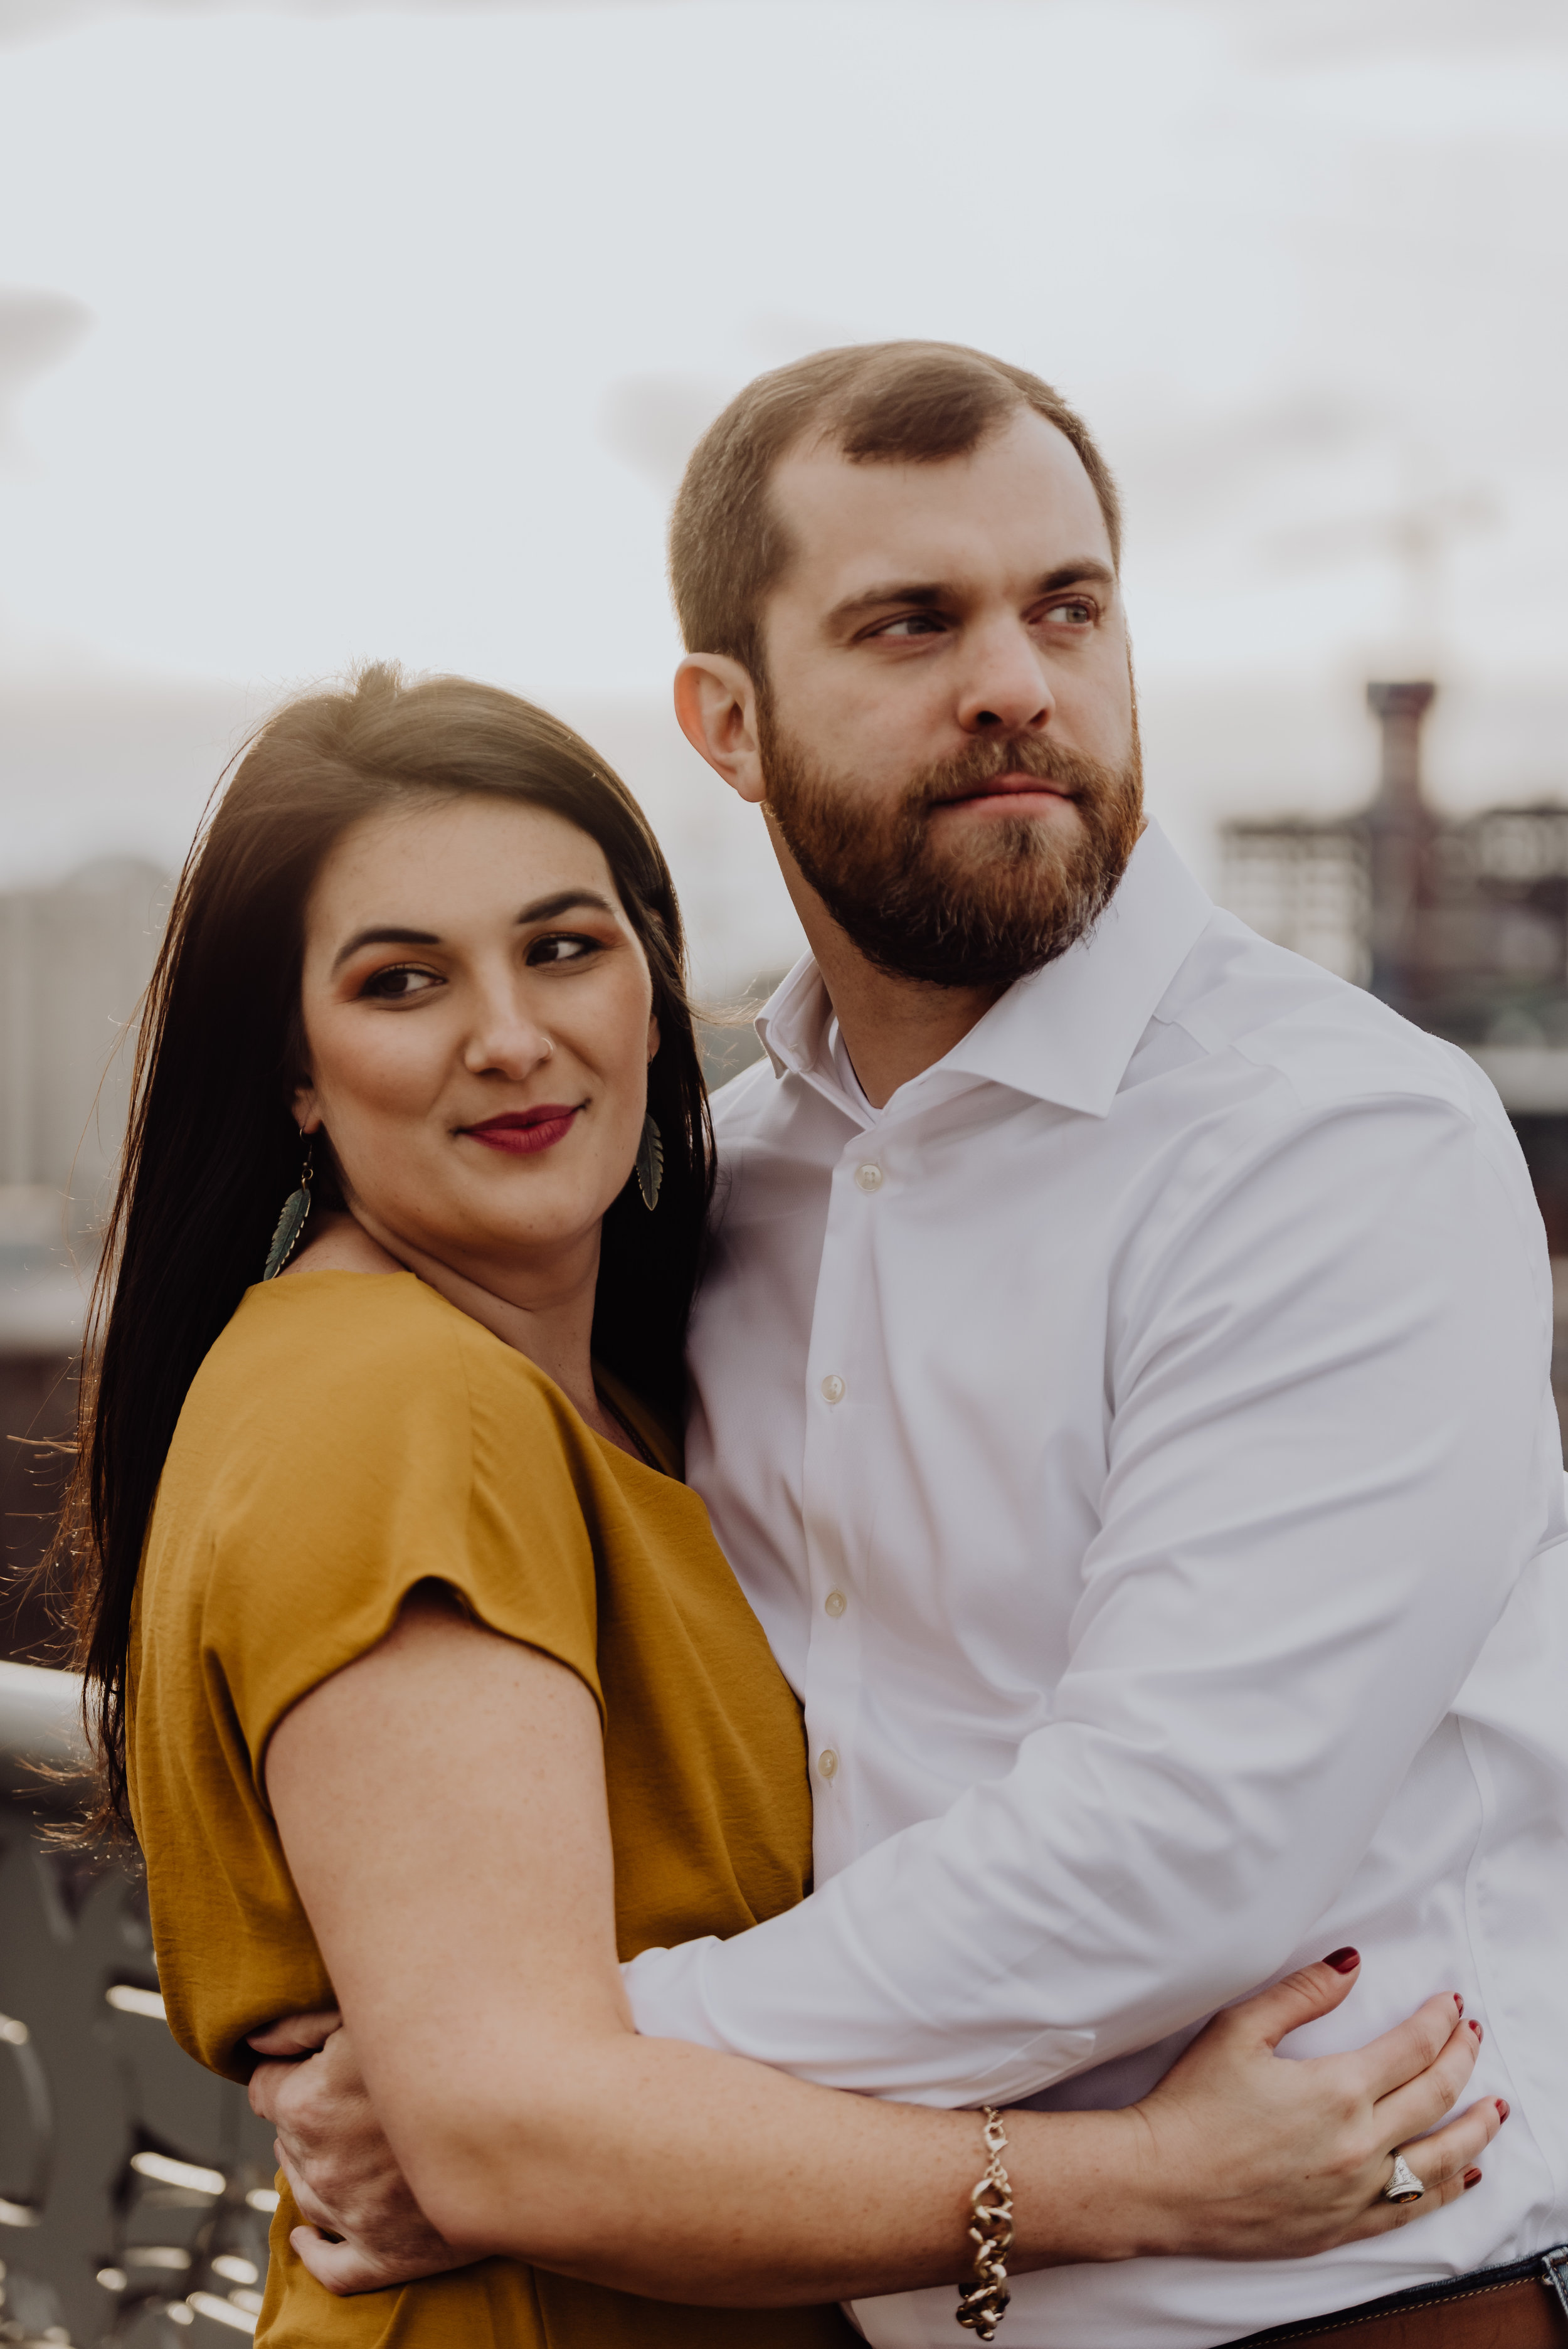 jaime jon nashville engagement session wilde company-2726-Edit.jpg